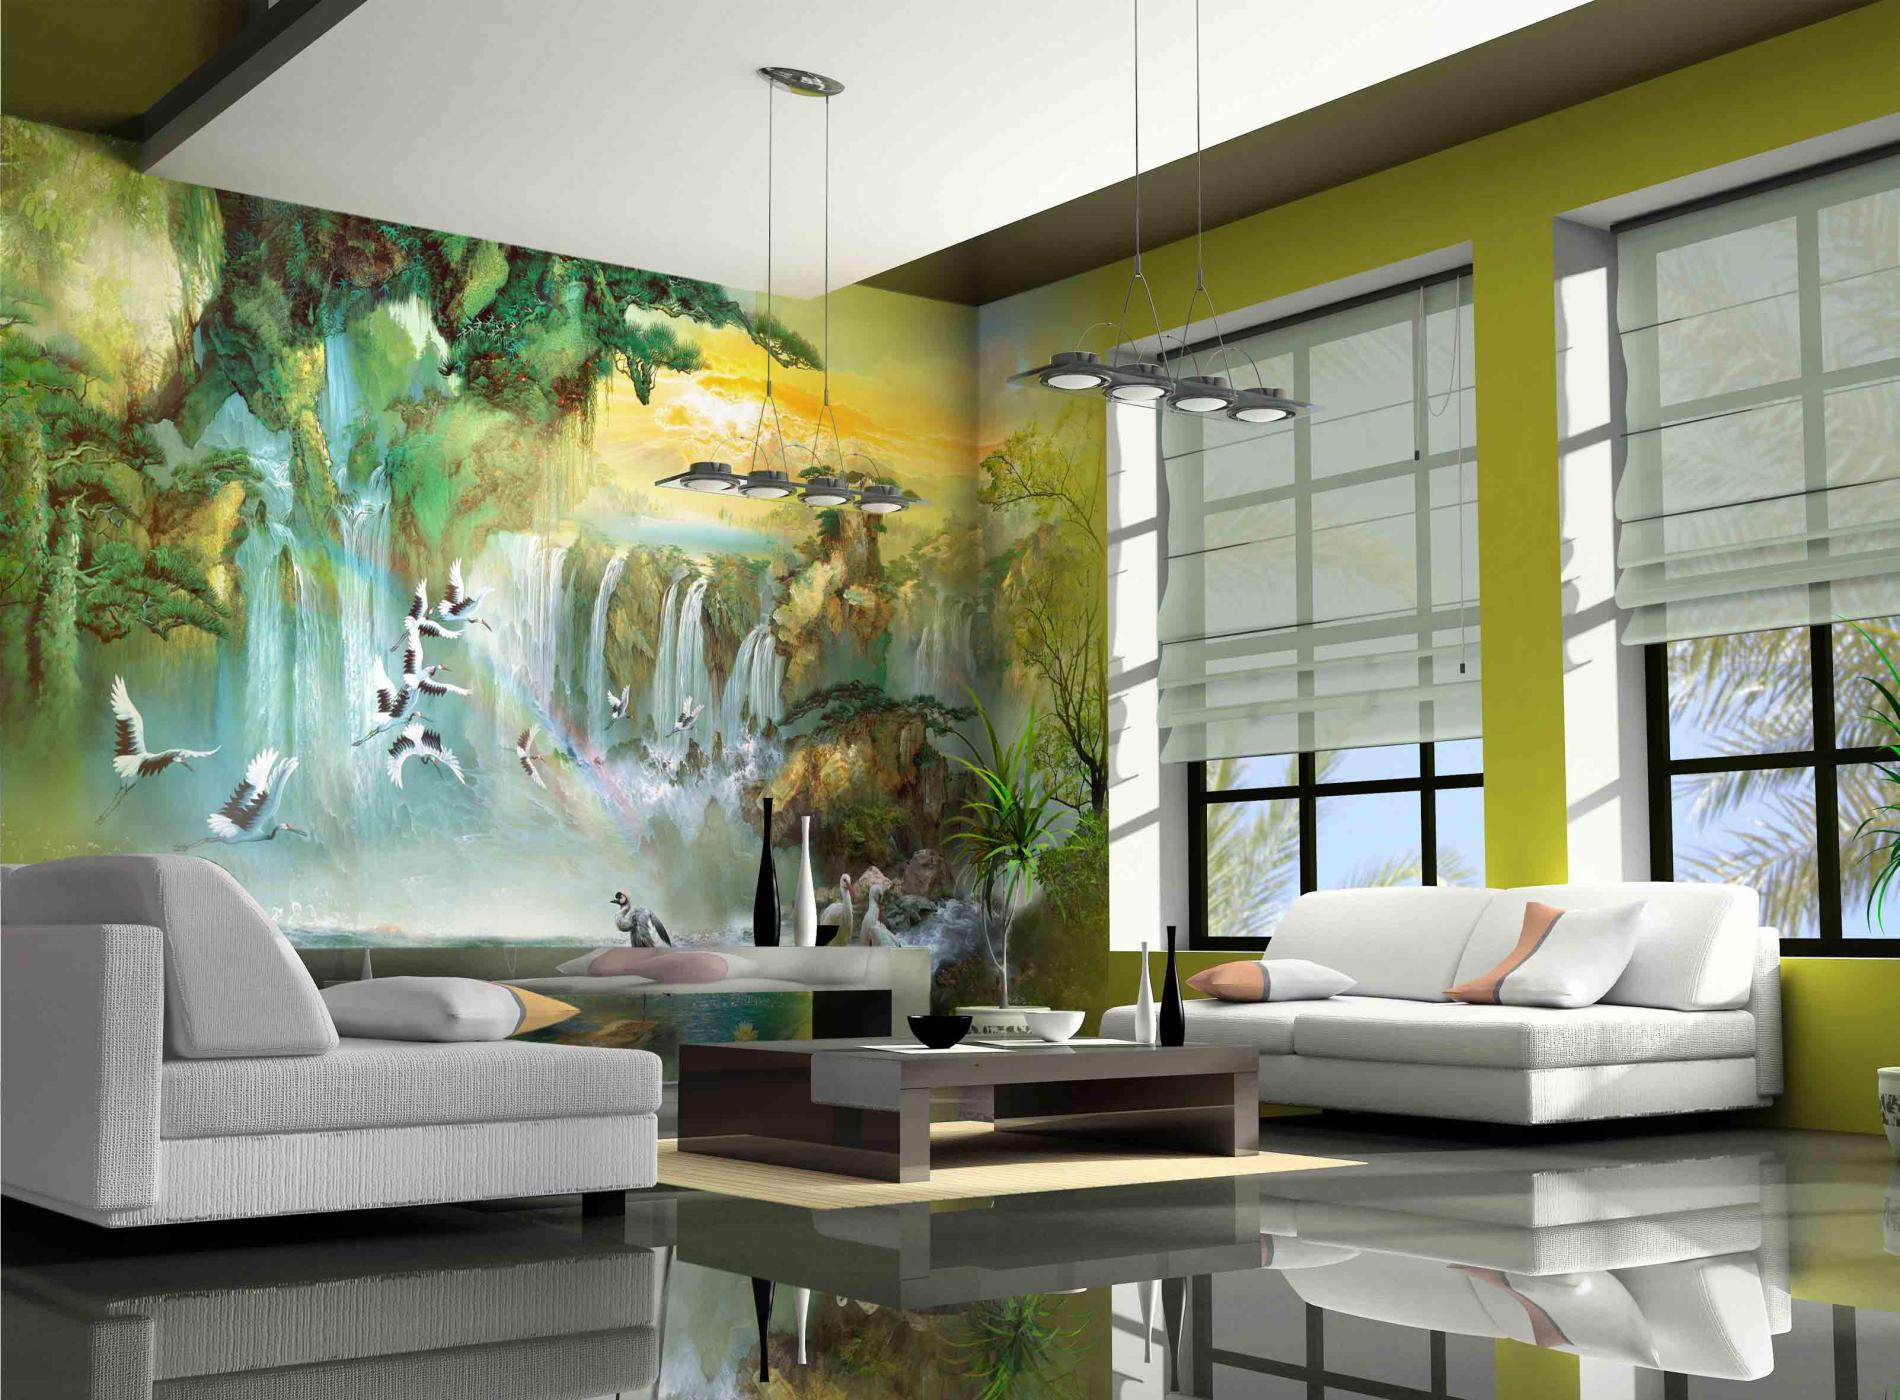 Wall Mural Ideas For Living Room Large Wall Art For Living Rooms Ideas Inspiration